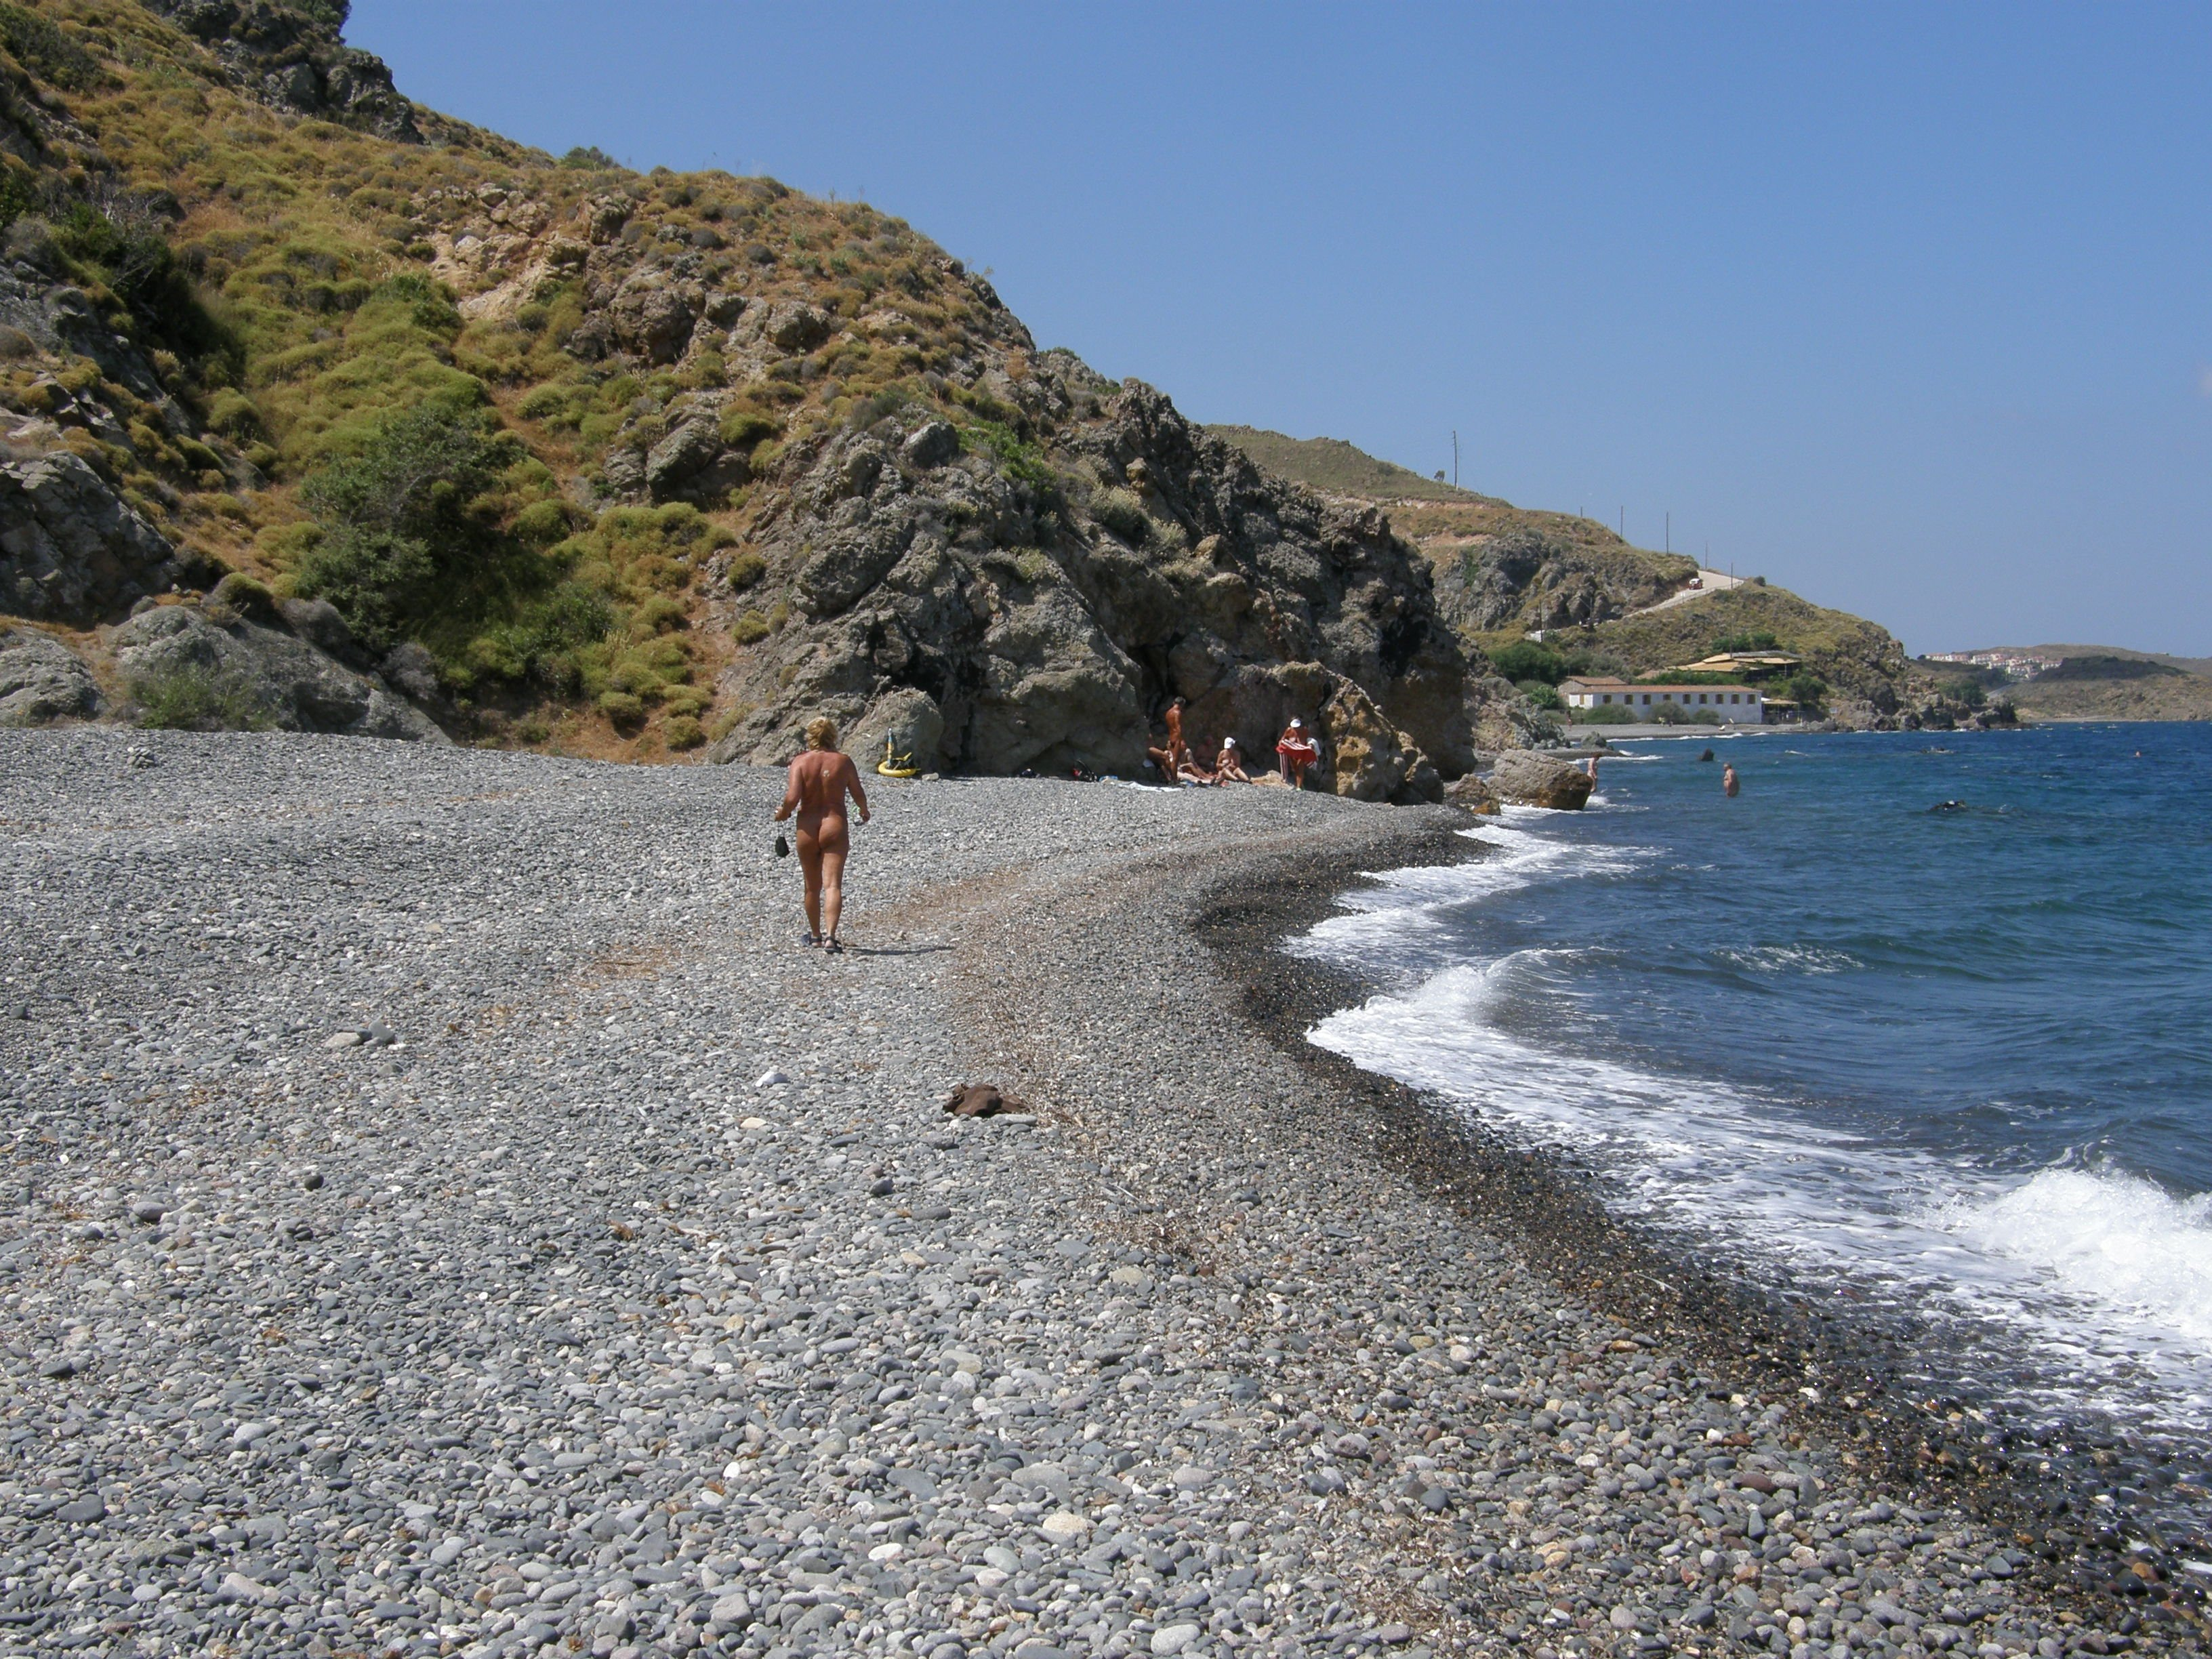 Nudist Beach The Northern Aegean Islands, Eftalou nude beach Photo from Agii Anargyri Efthalous in Lesvos ...